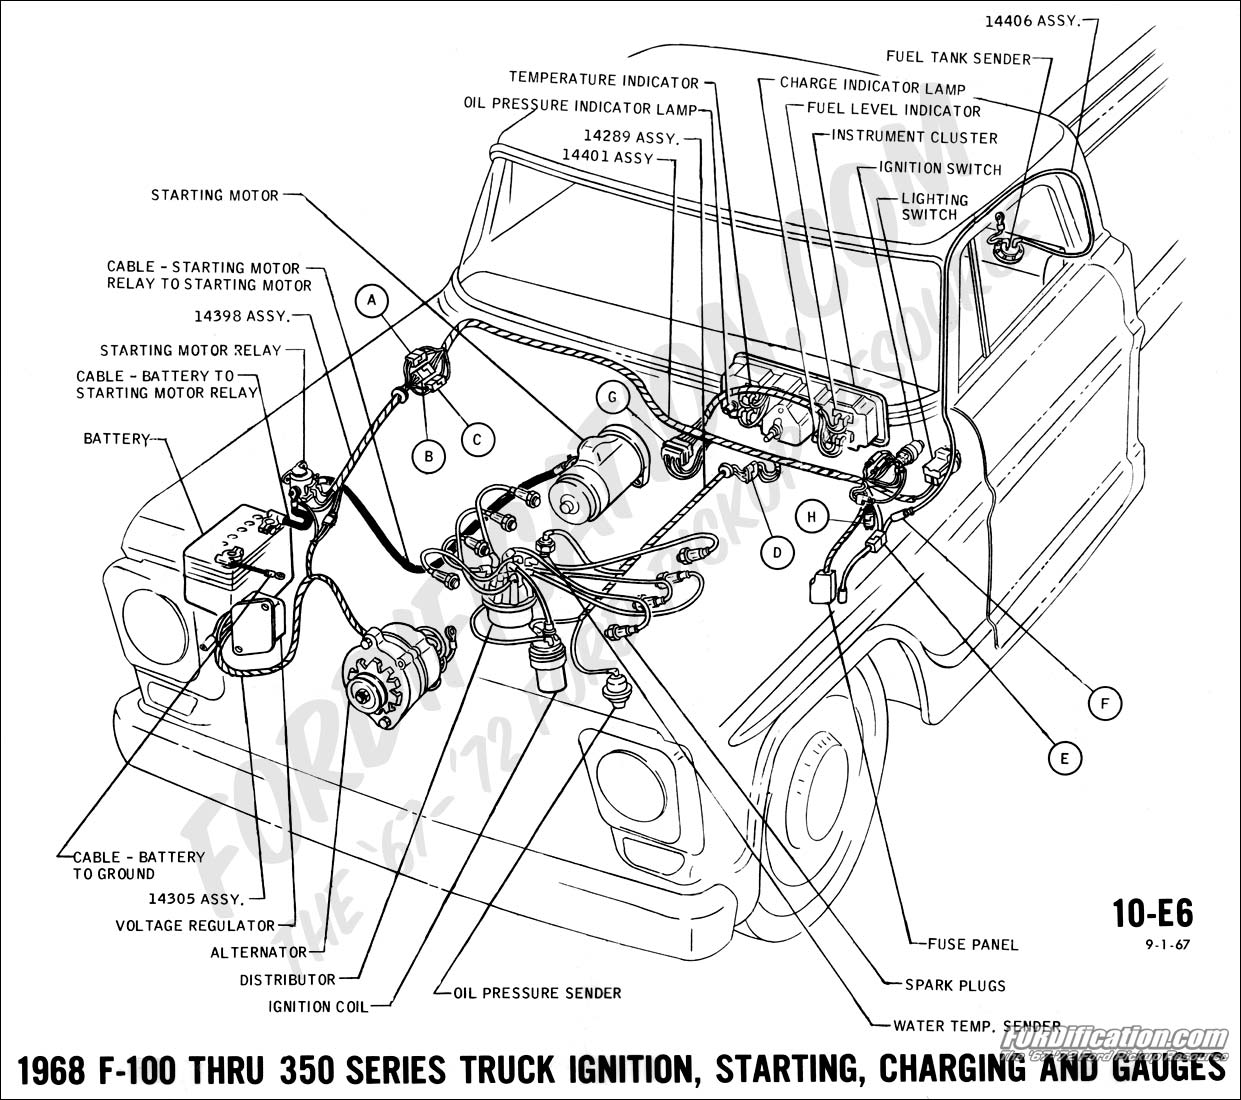 68 08 ford truck technical drawings and schematics section h wiring 1969 Ford F100 Steering Column Wiring Diagram at gsmportal.co